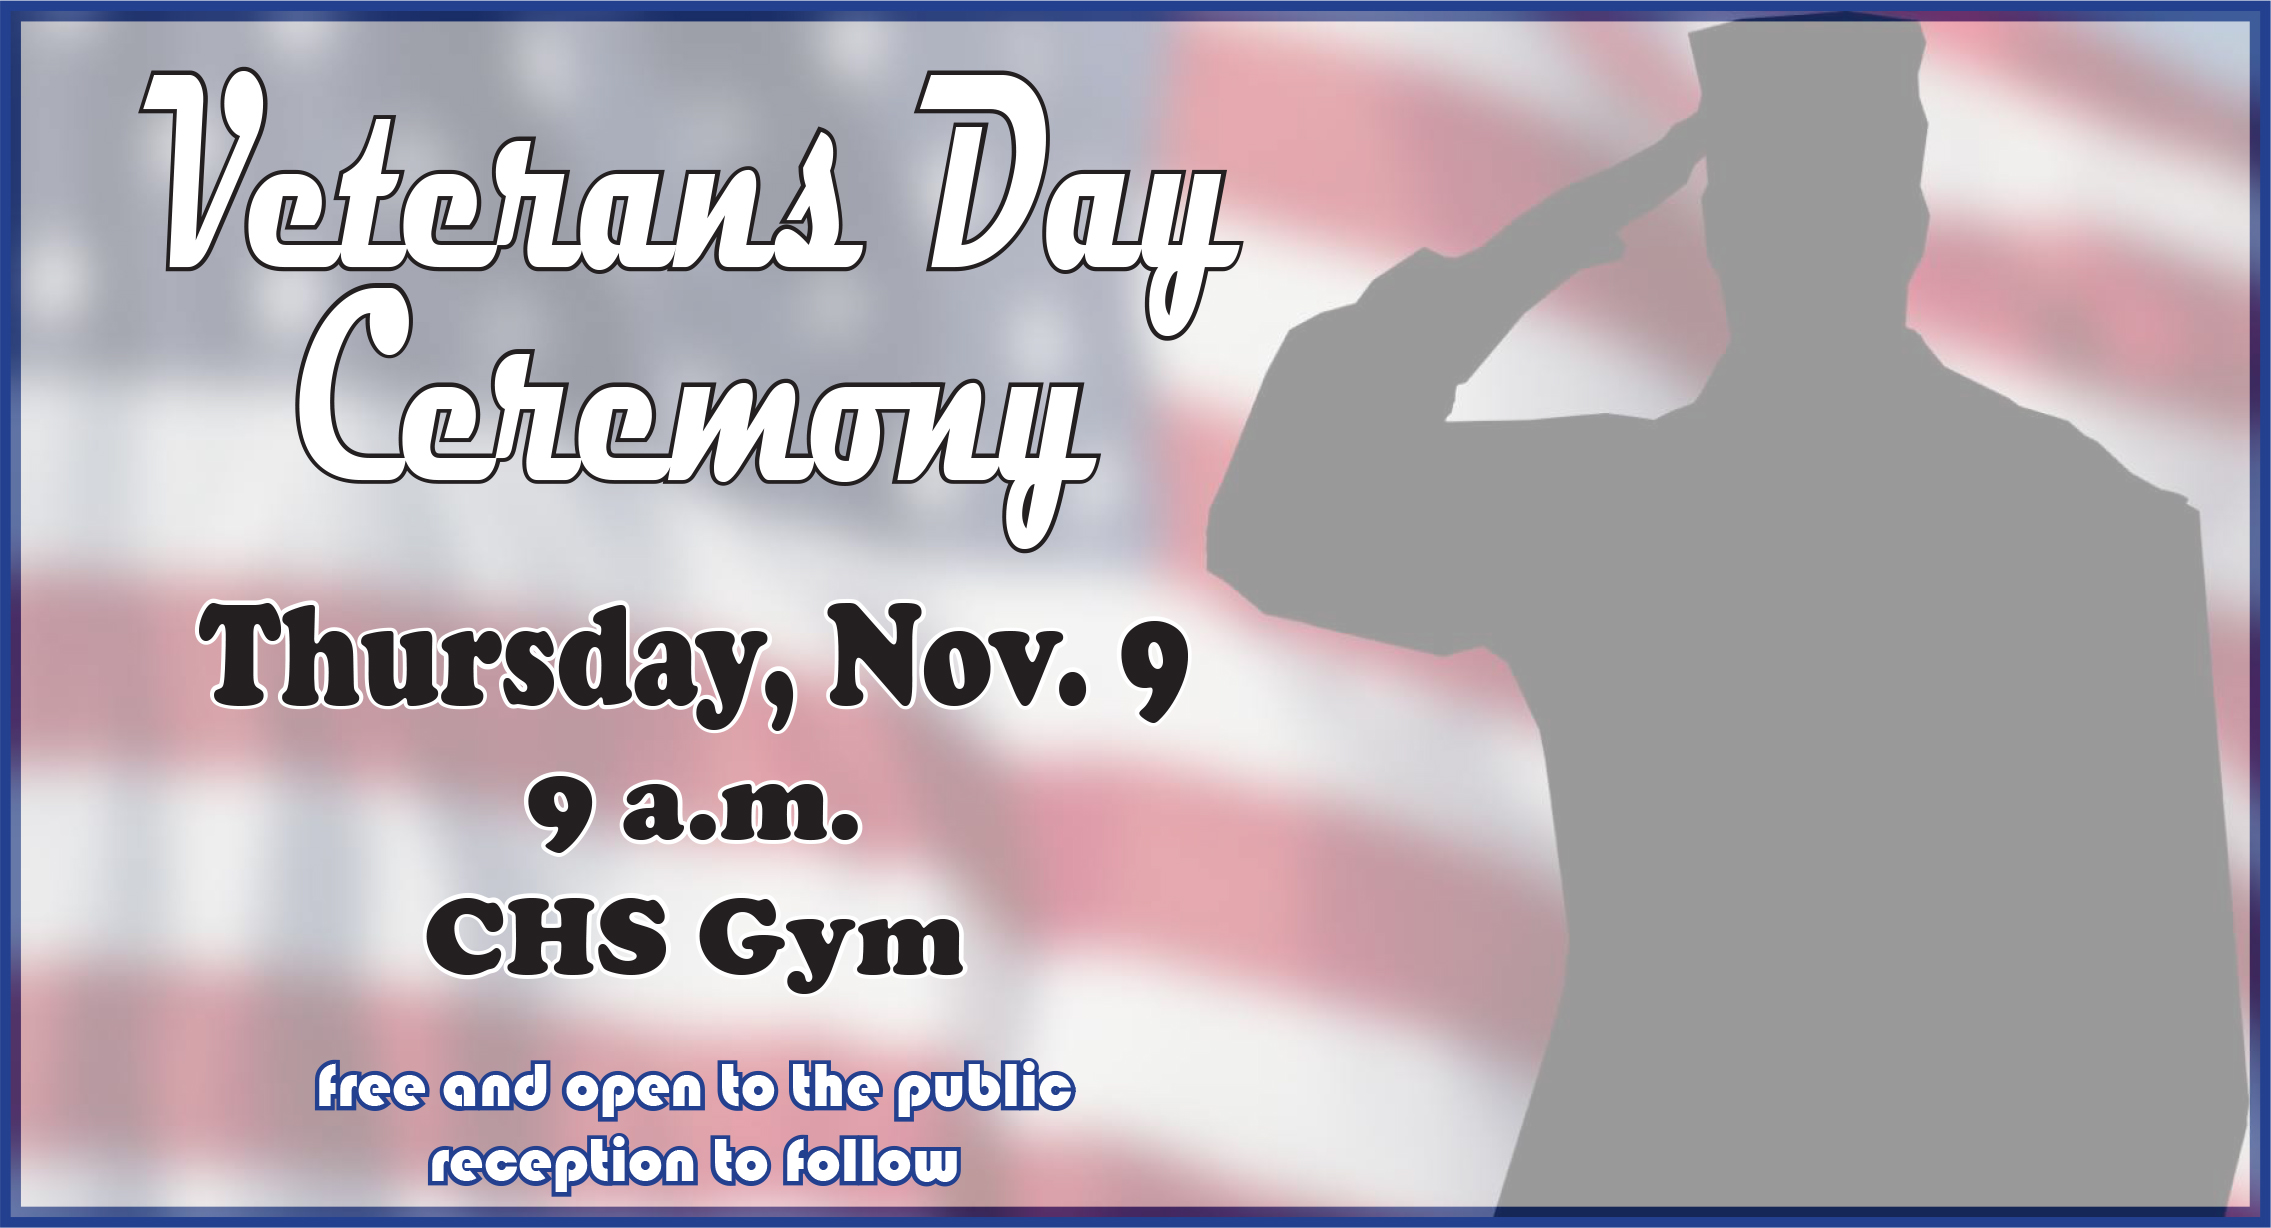 Campbellsville Independent Schools will host a Veterans Day program for local veterans and community members.    The special ceremony will be on Thursday, Nov. 9, at 9 a.m. in the Campbellsville High School gym.    Campbellsville elementary, middle and high school students will present the program.